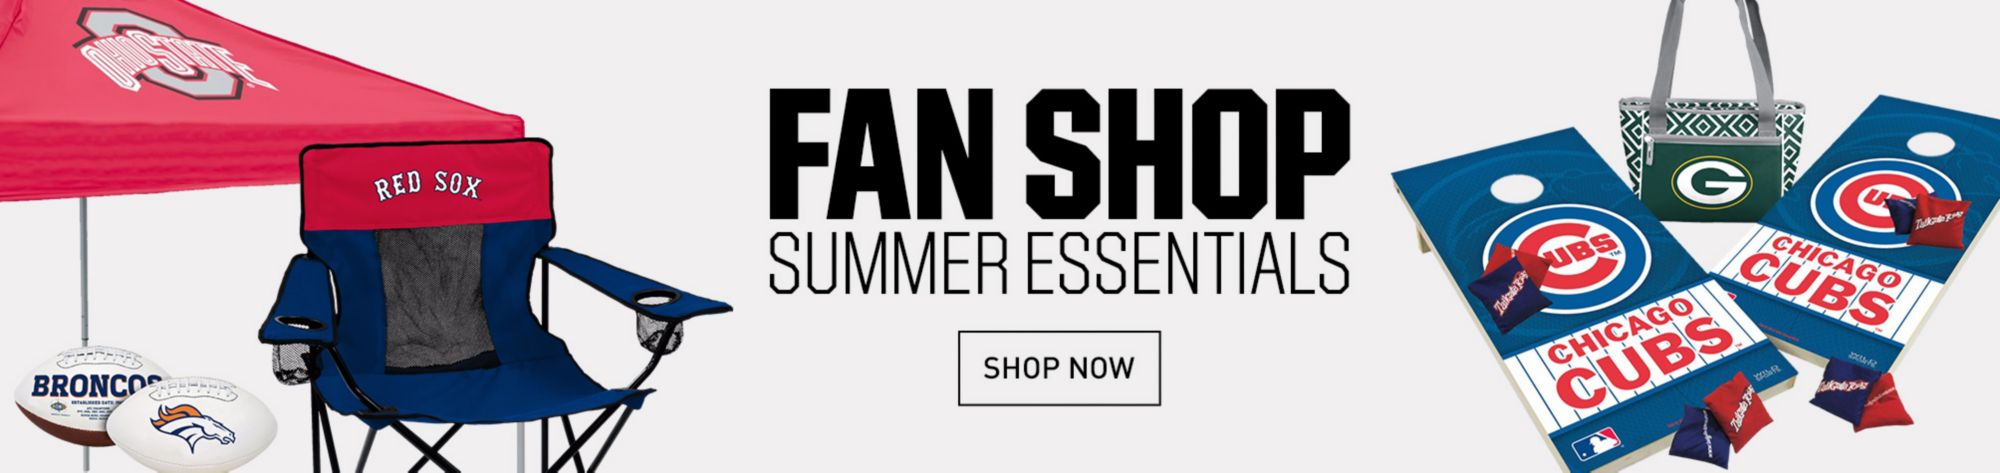 Fan Shop Summer Accessories